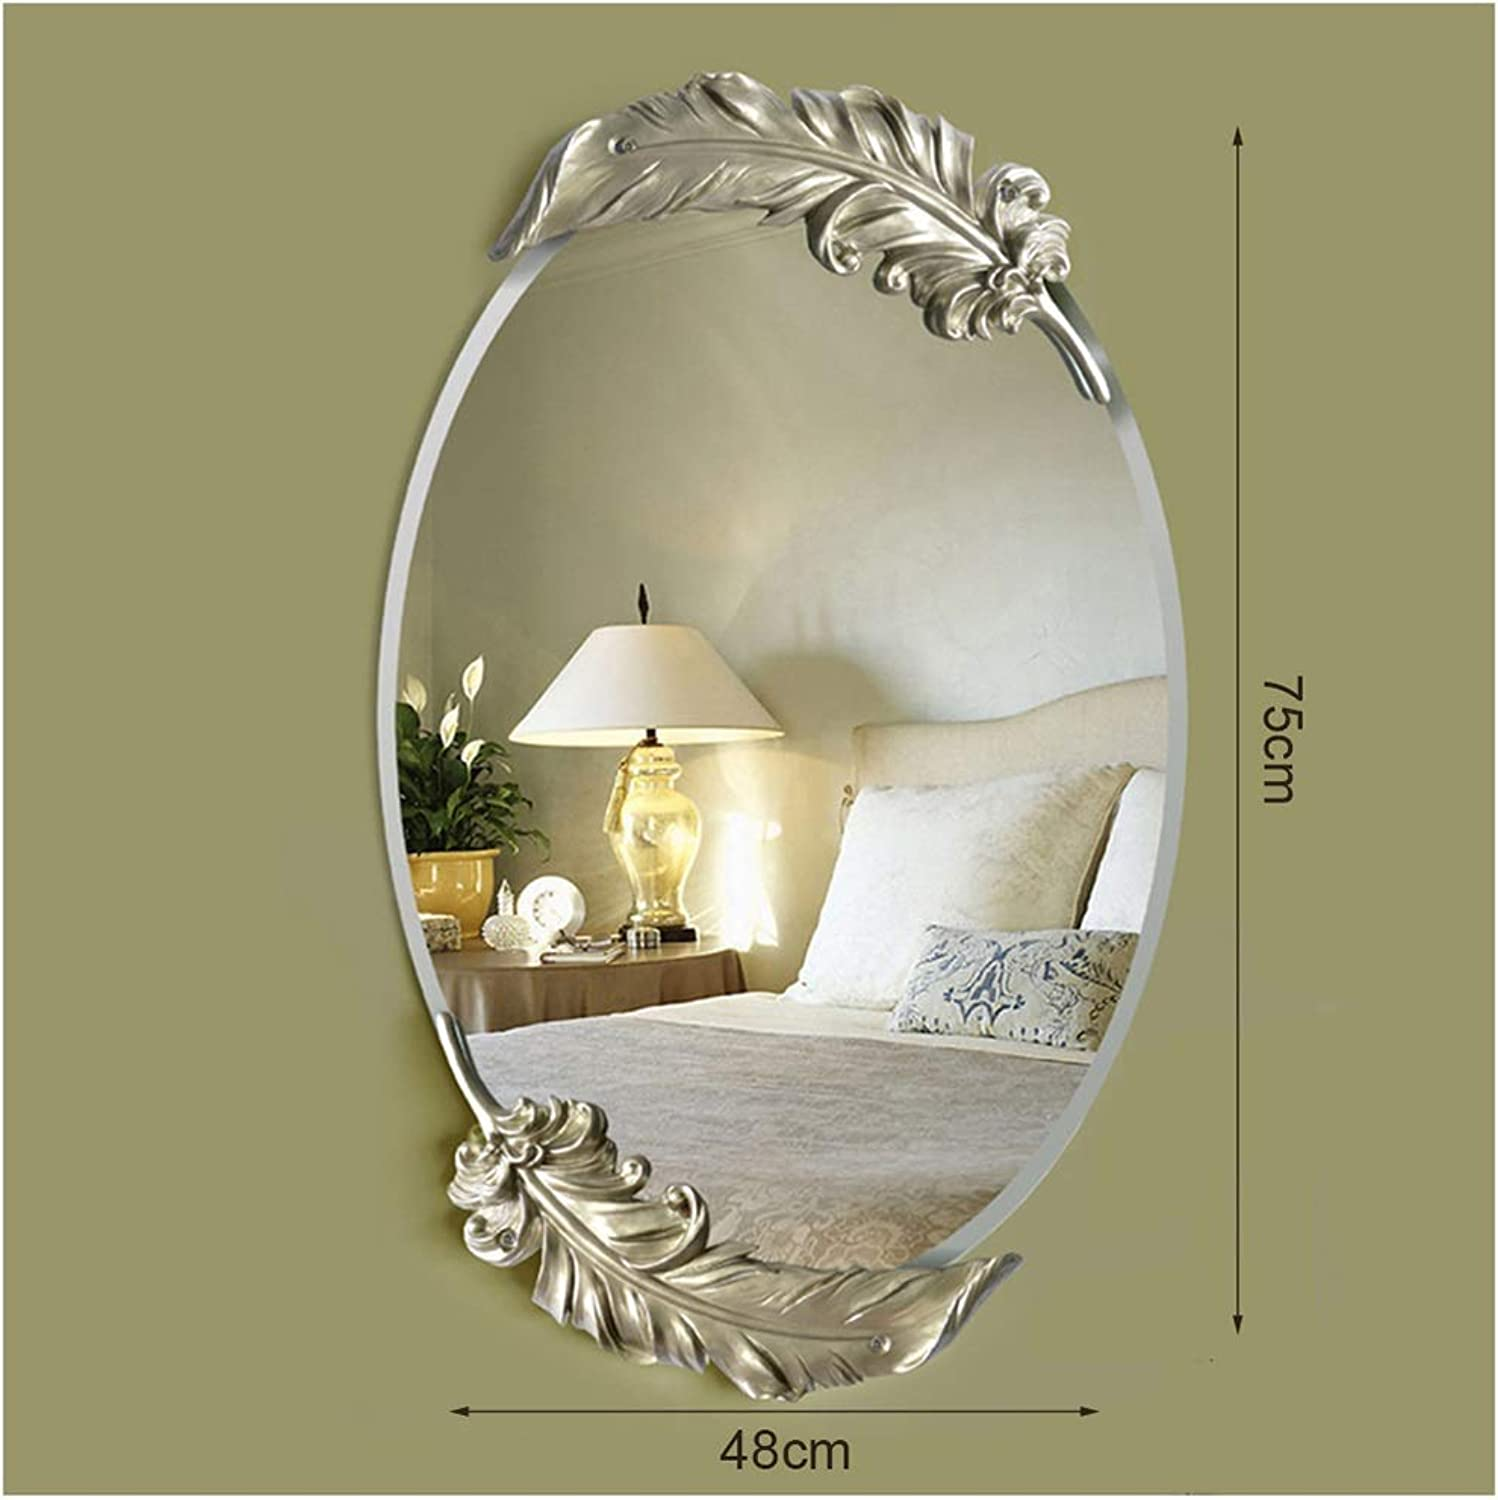 YYF Frameless Elliptical Mirror European Feather Dressing Wall Hanging Bathroom Living Room 65cm41cm (26 inches  16 inches) (color   Champagne, Size   41cmX65cm)